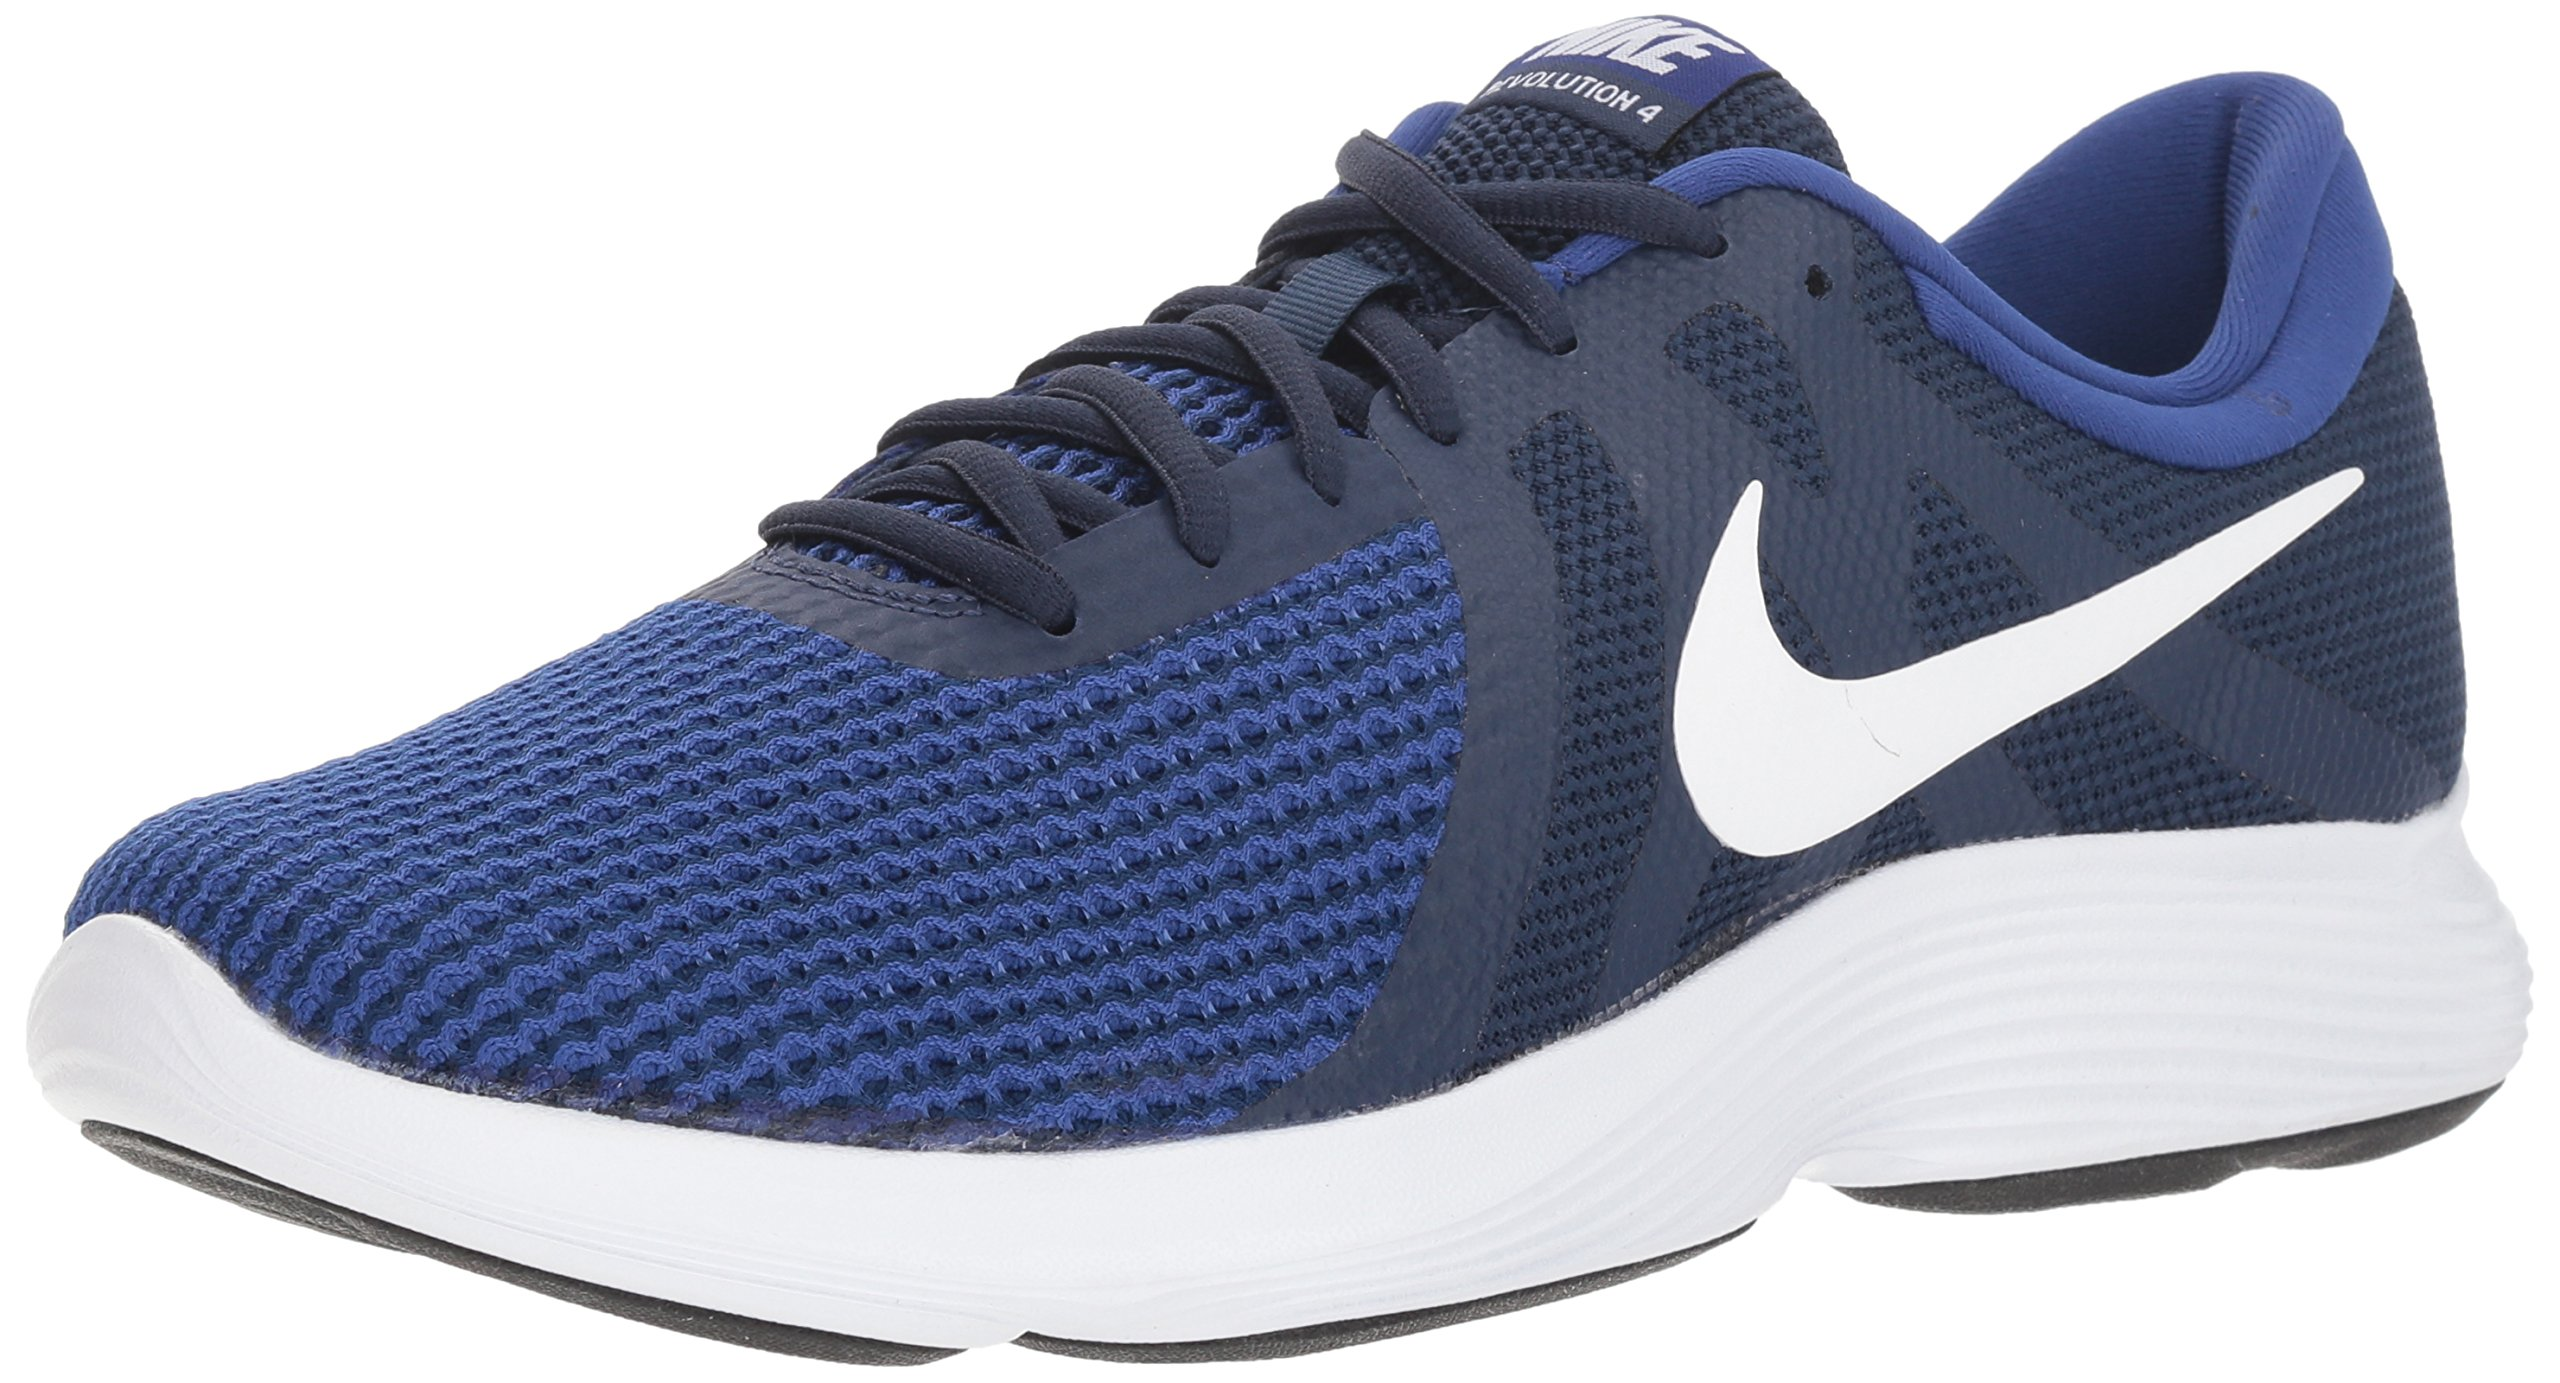 Nike Men's Revolution 4 Running Shoe, Midnight Navy/White/Deep Royal, 13 Regular US by Nike